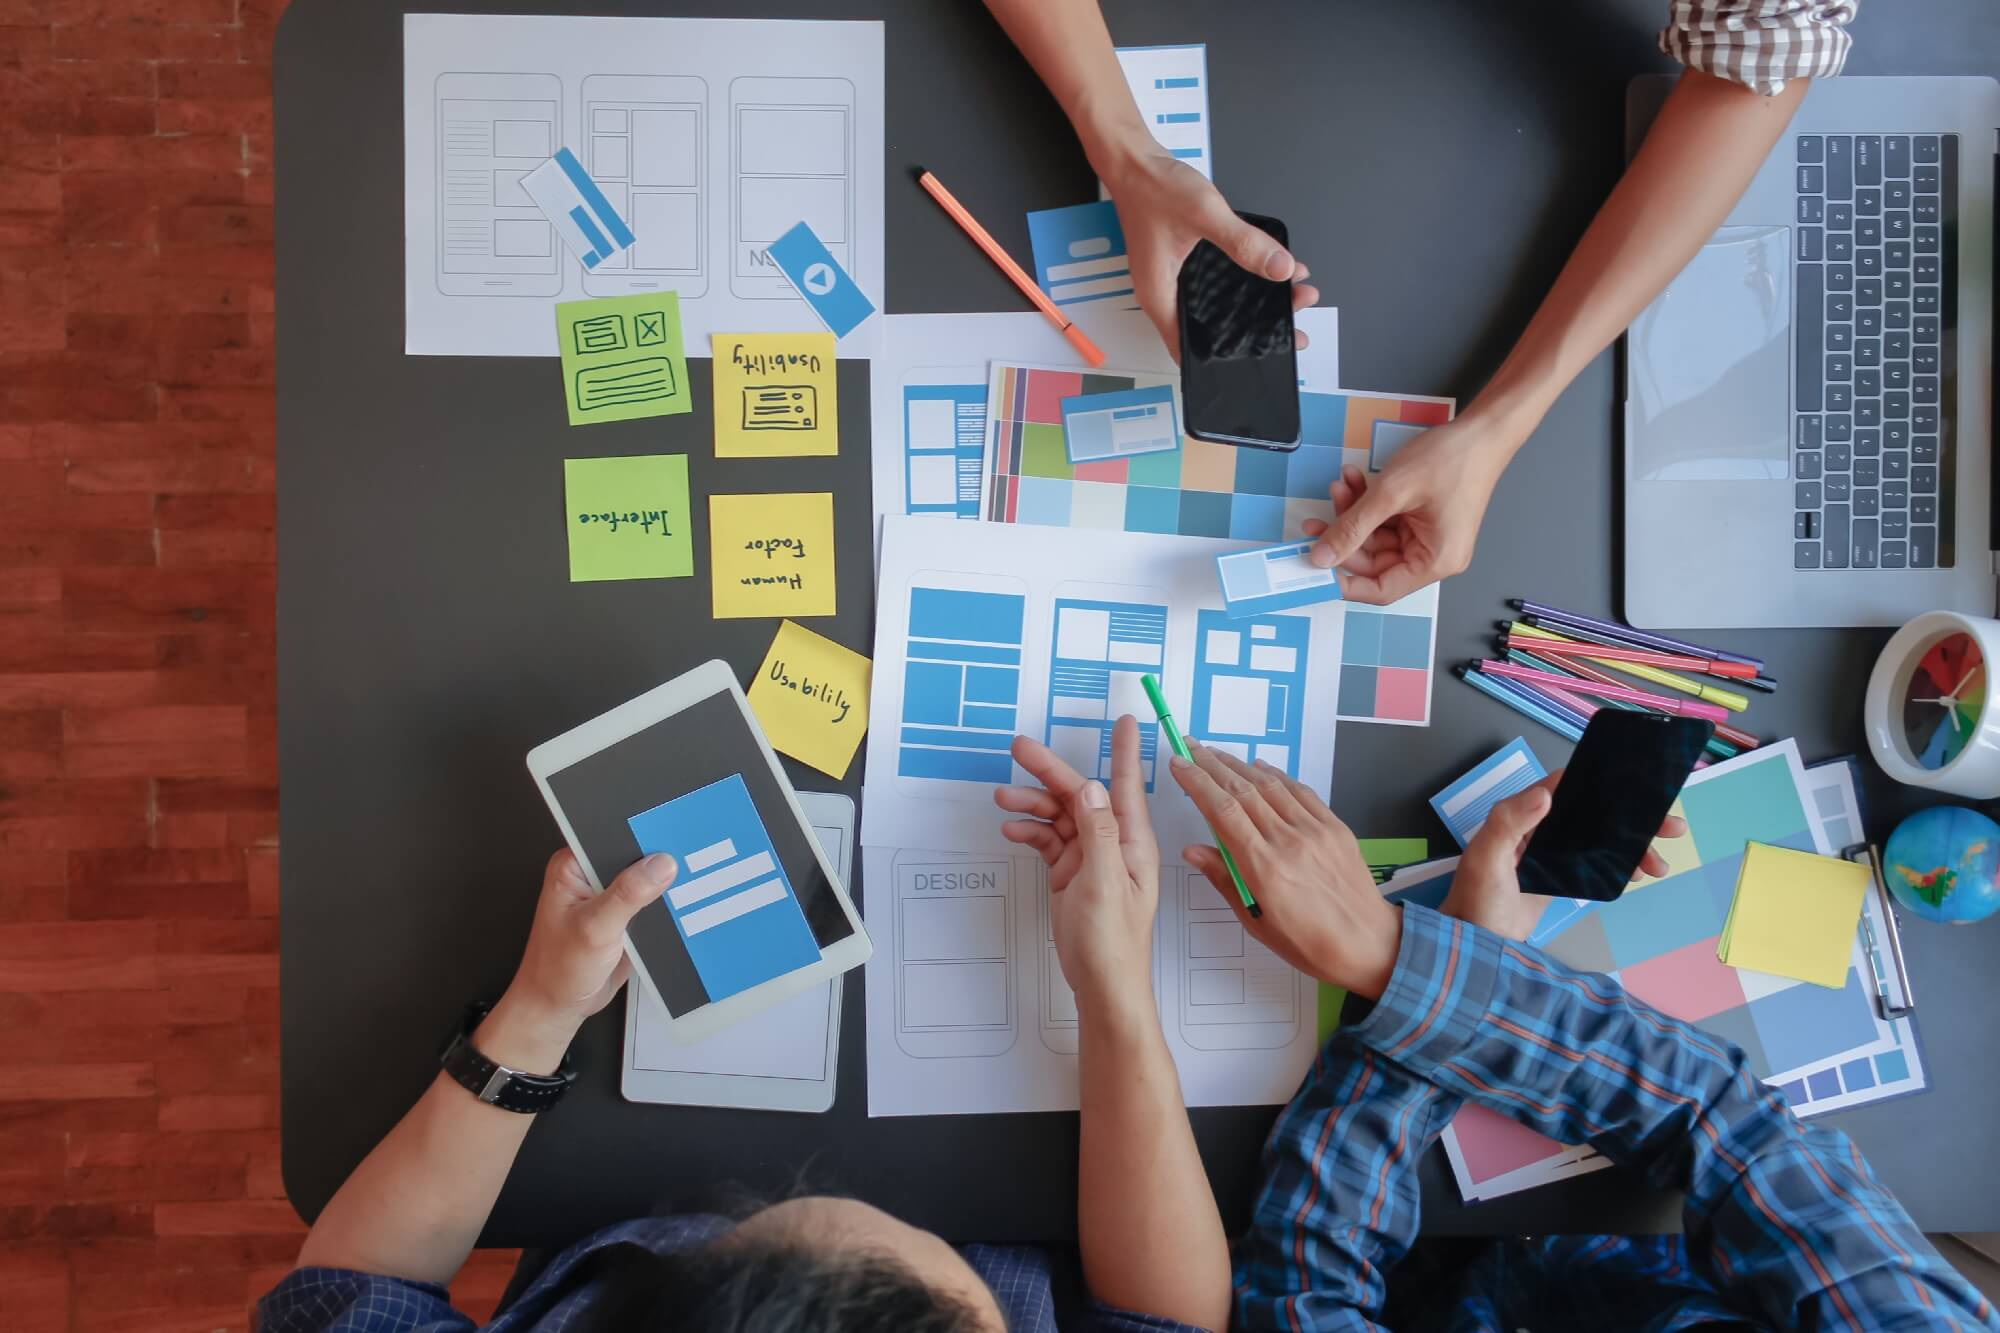 Startup Management: Keeping Up with Competition